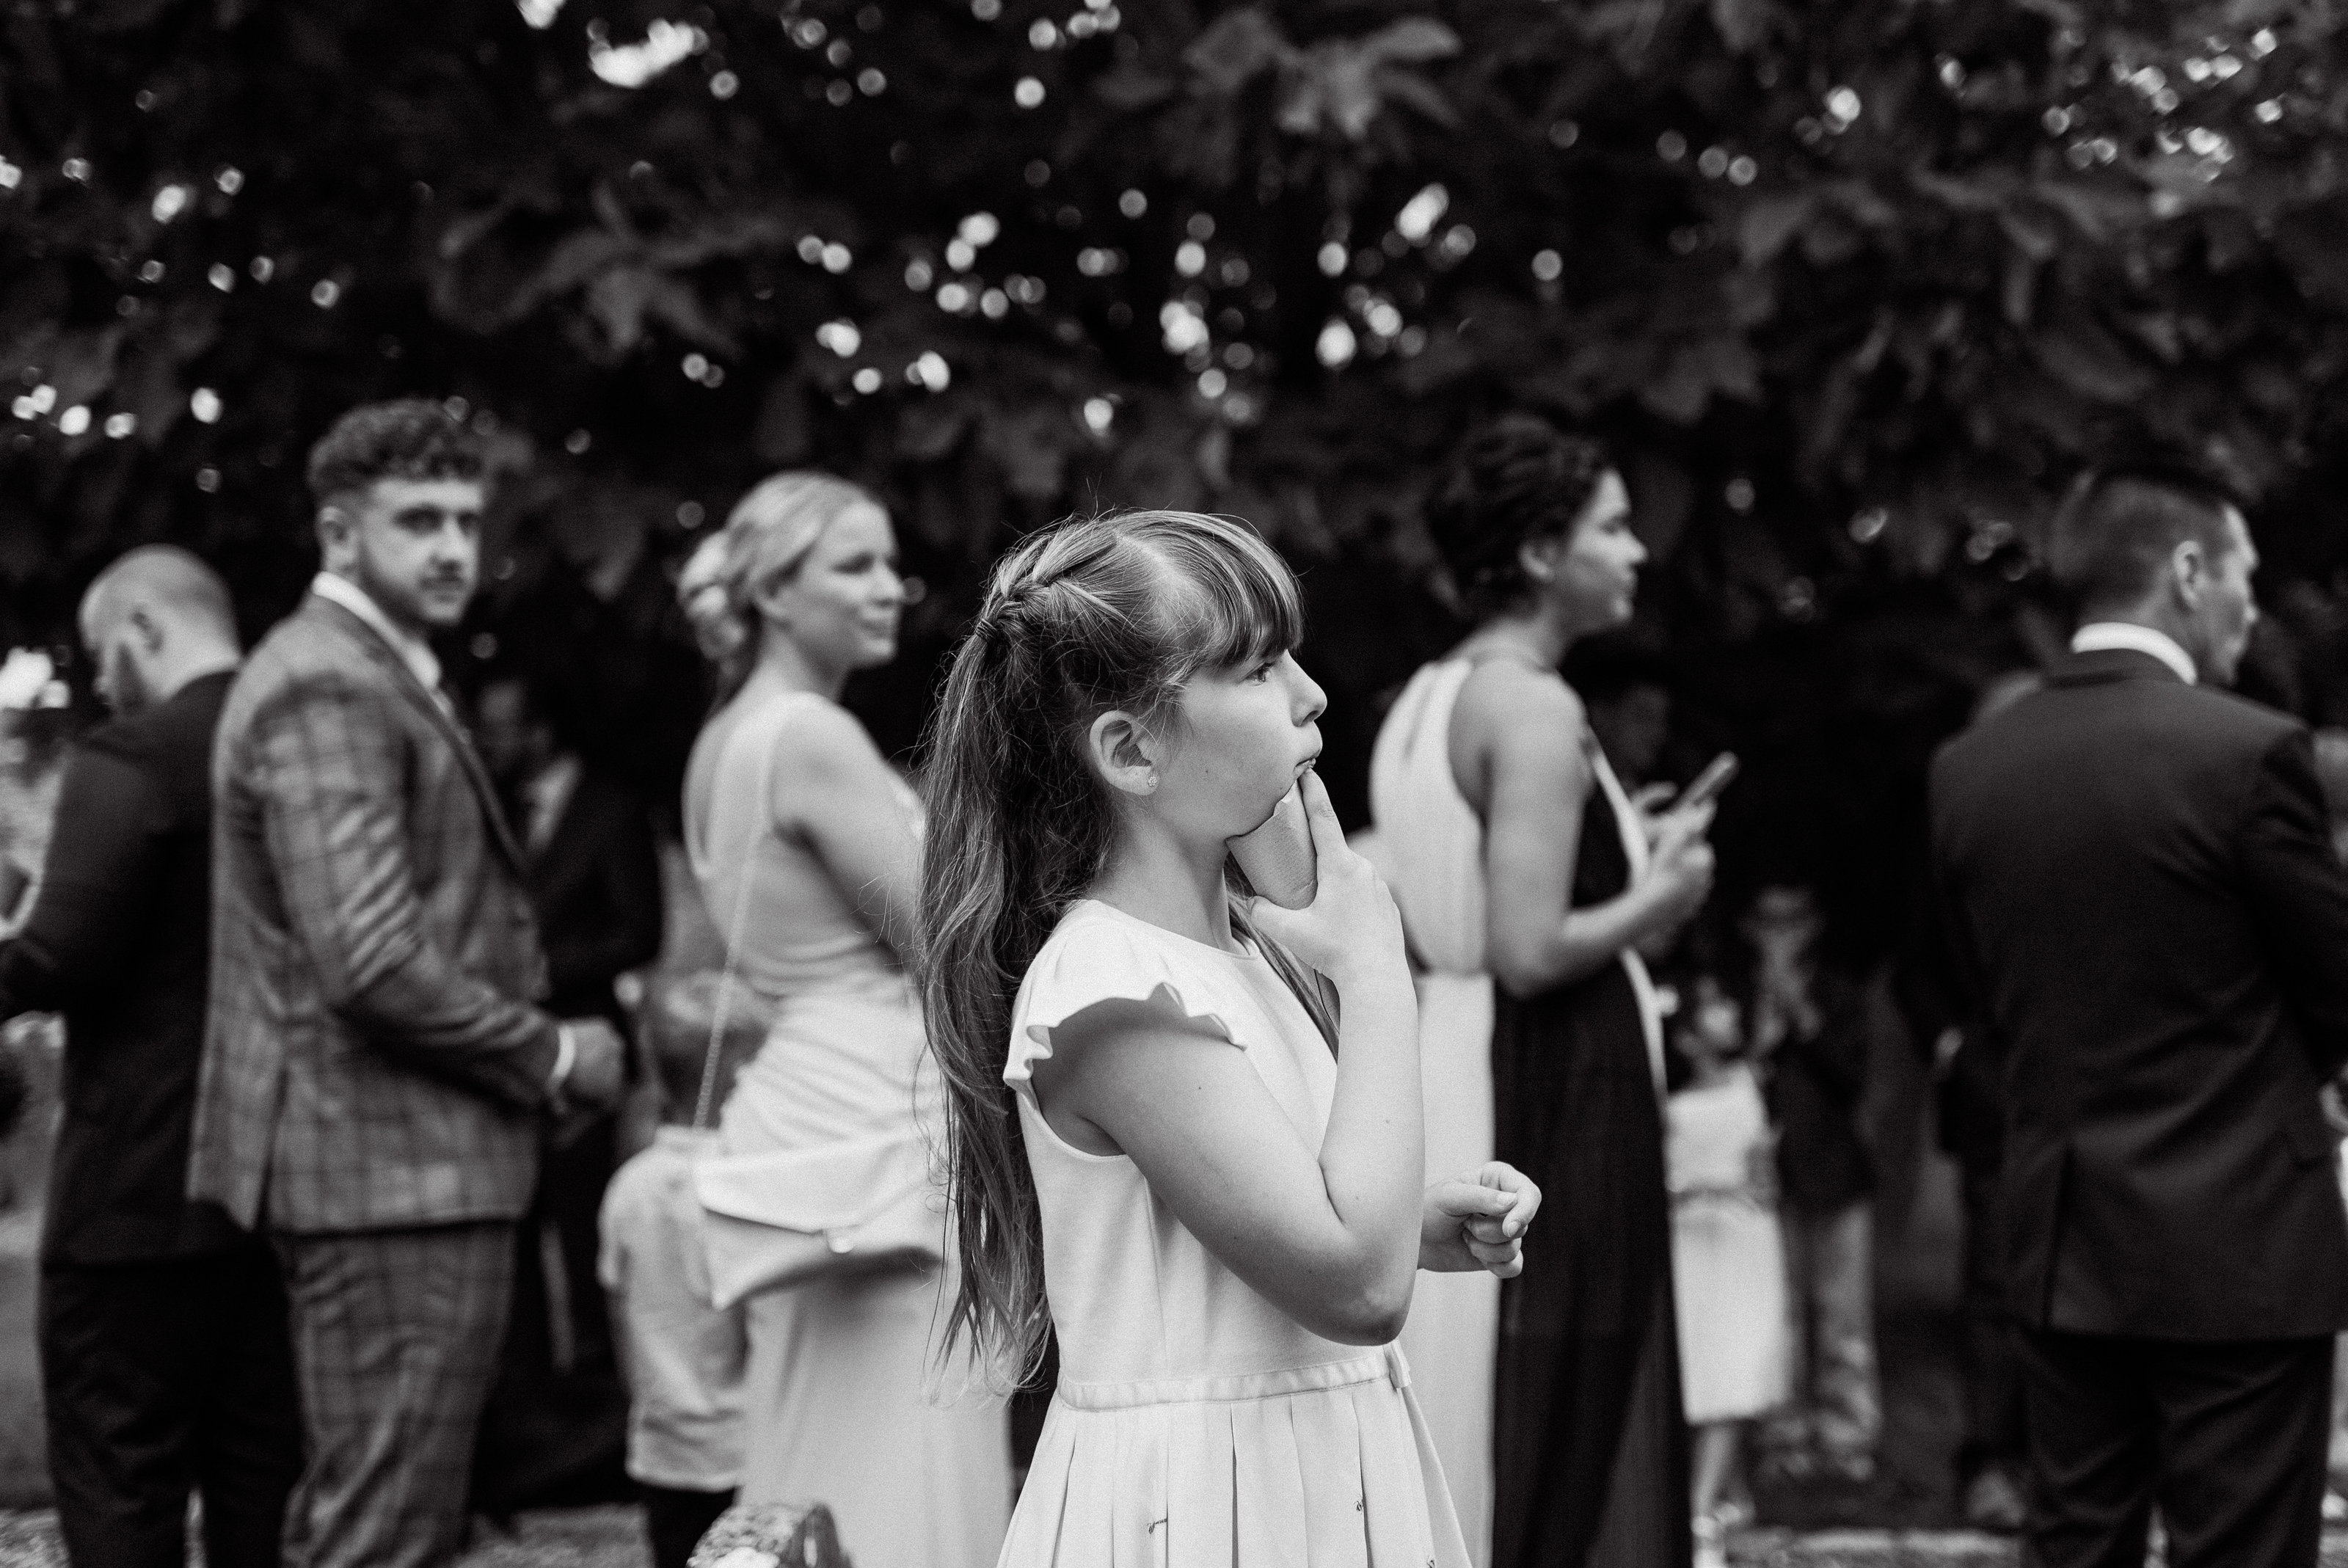 Candid black and white photograph of flowergirl holding confetti eagerly waiting to throw the confetti, captured by Adorlee Photography